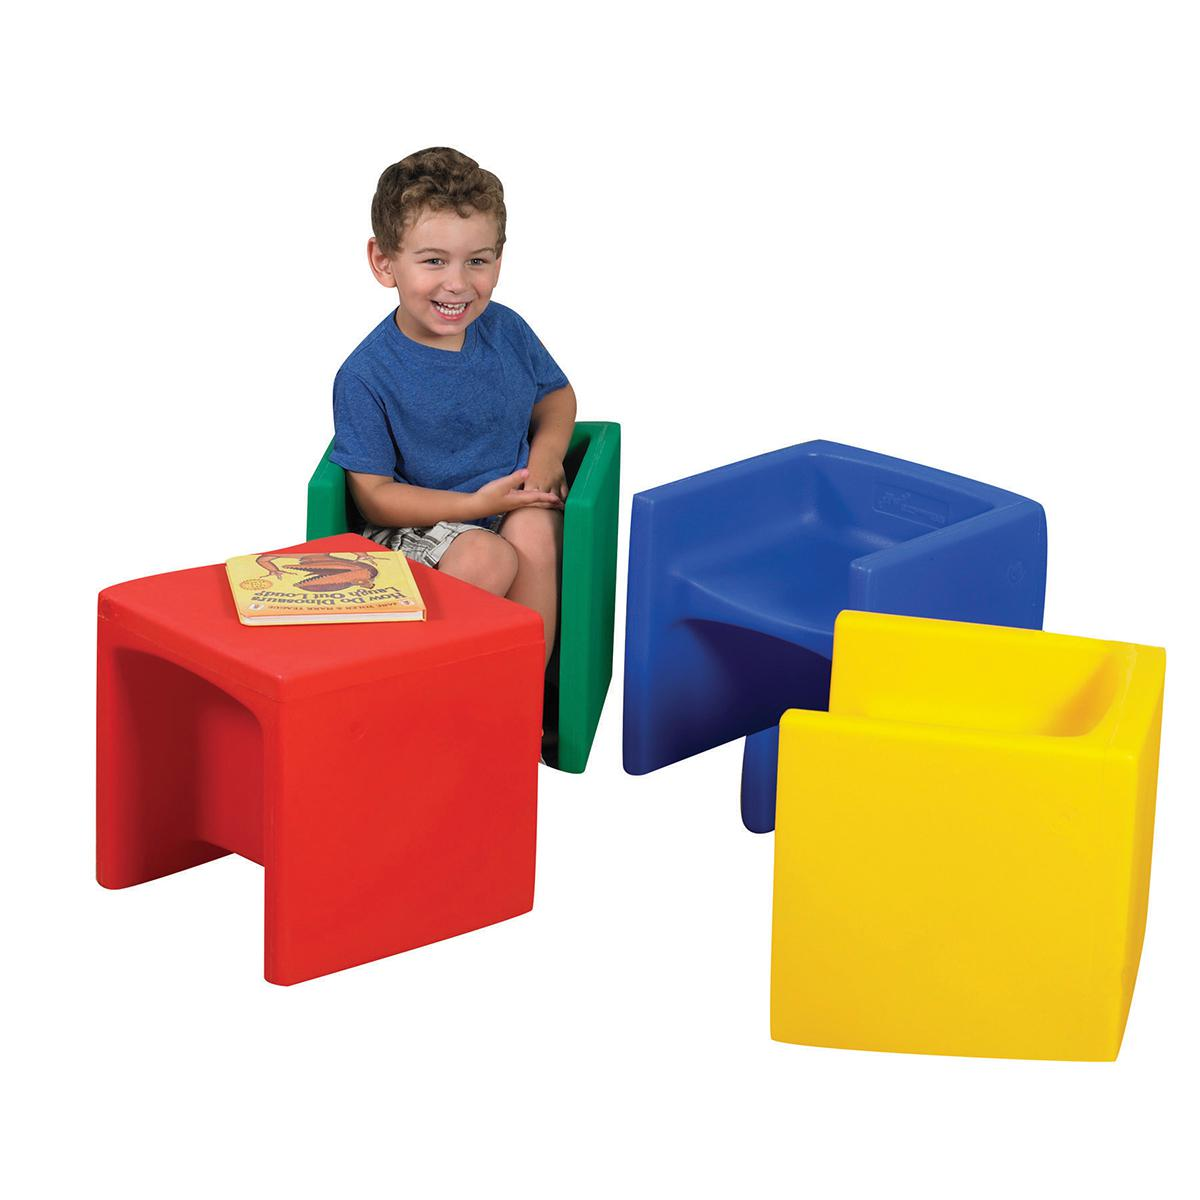 Cube Chairs Primary Set of 4